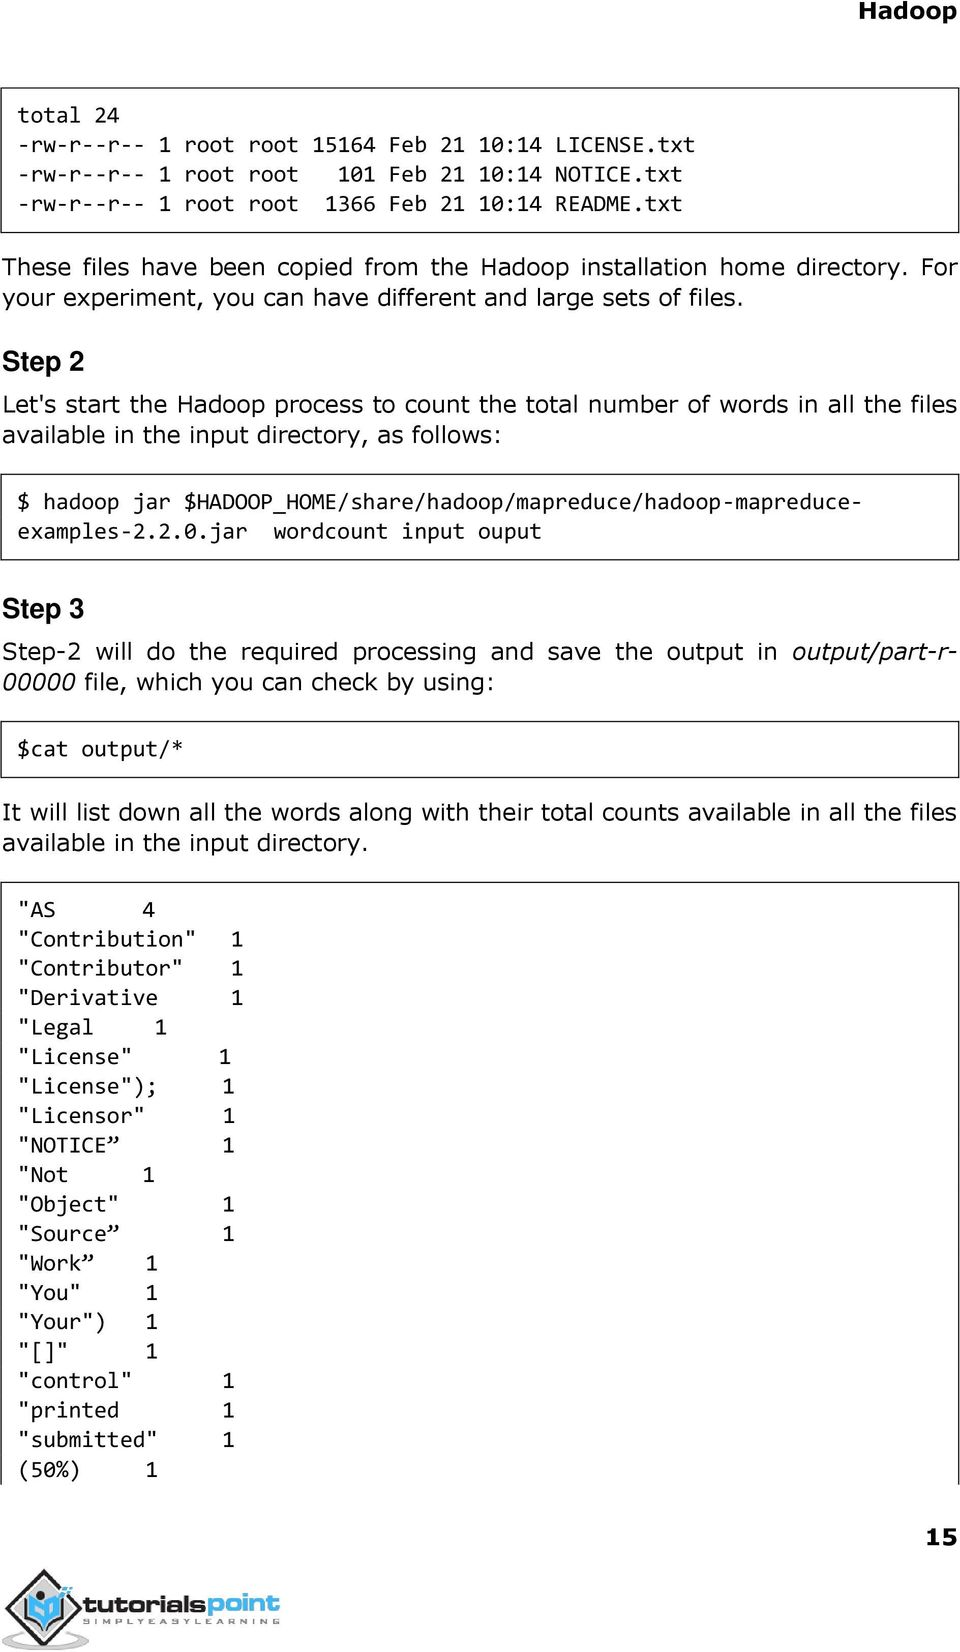 Step 2 Let's start the Hadoop process to count the total number of words in all the files available in the input directory, as follows: $ hadoop jar